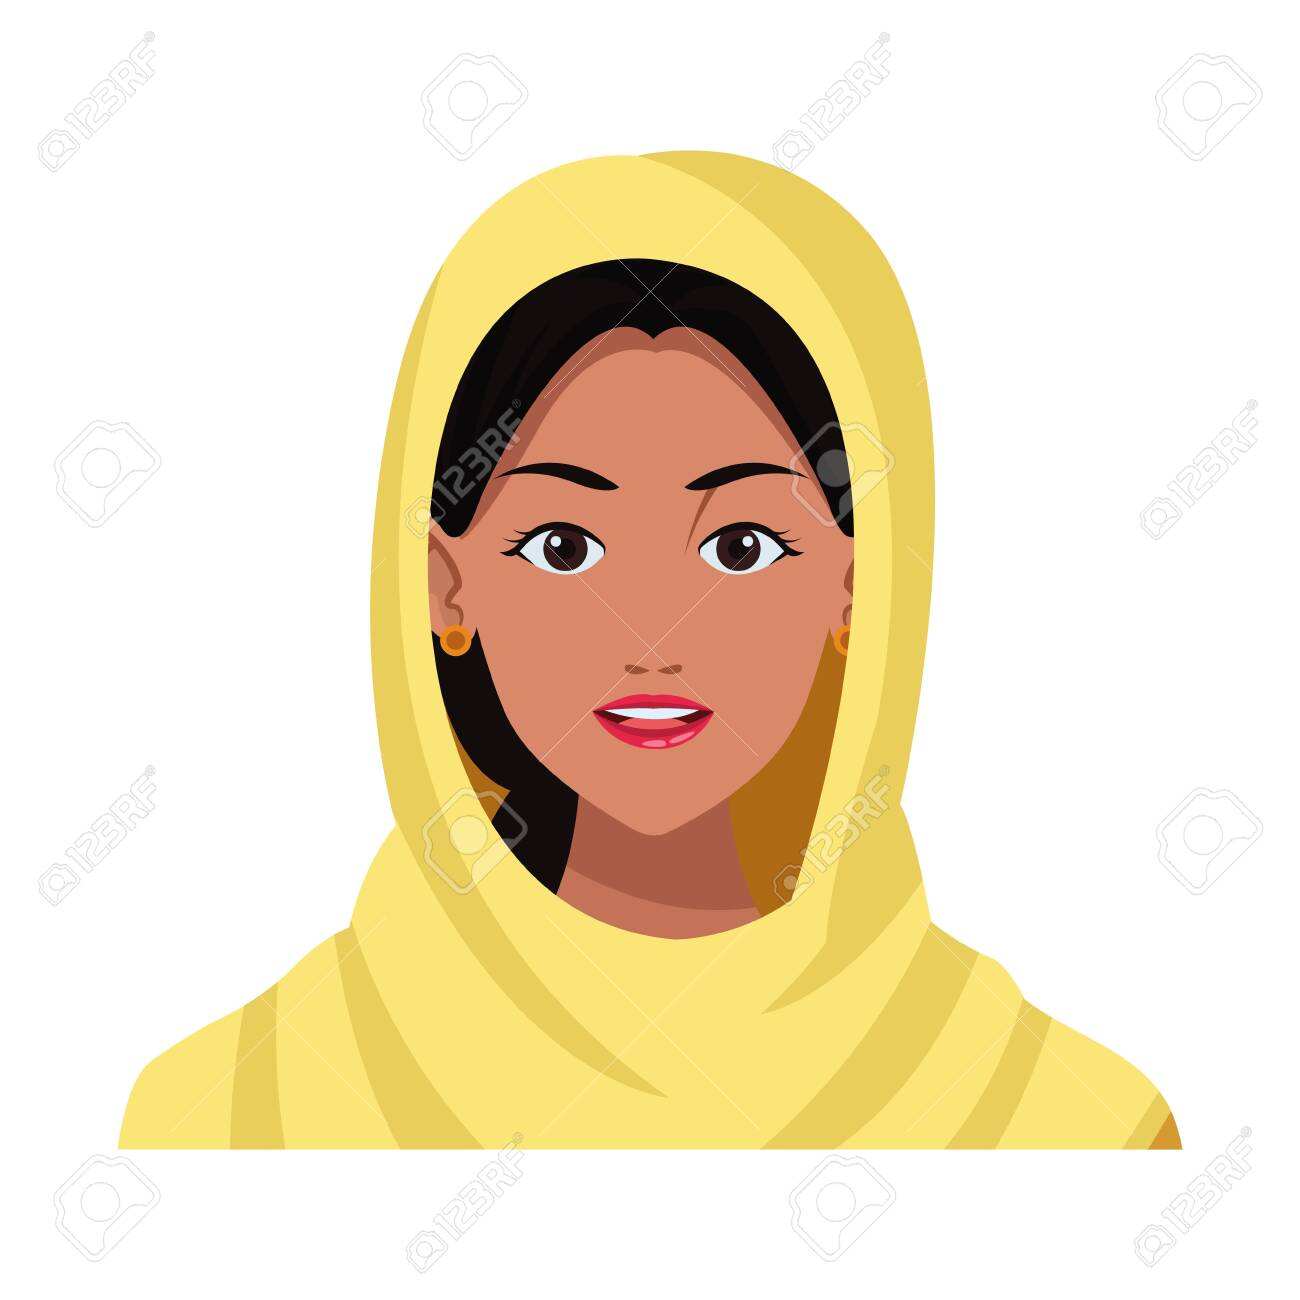 Indian Woman Face With Hijab Profile Picture Avatar Cartoon Character